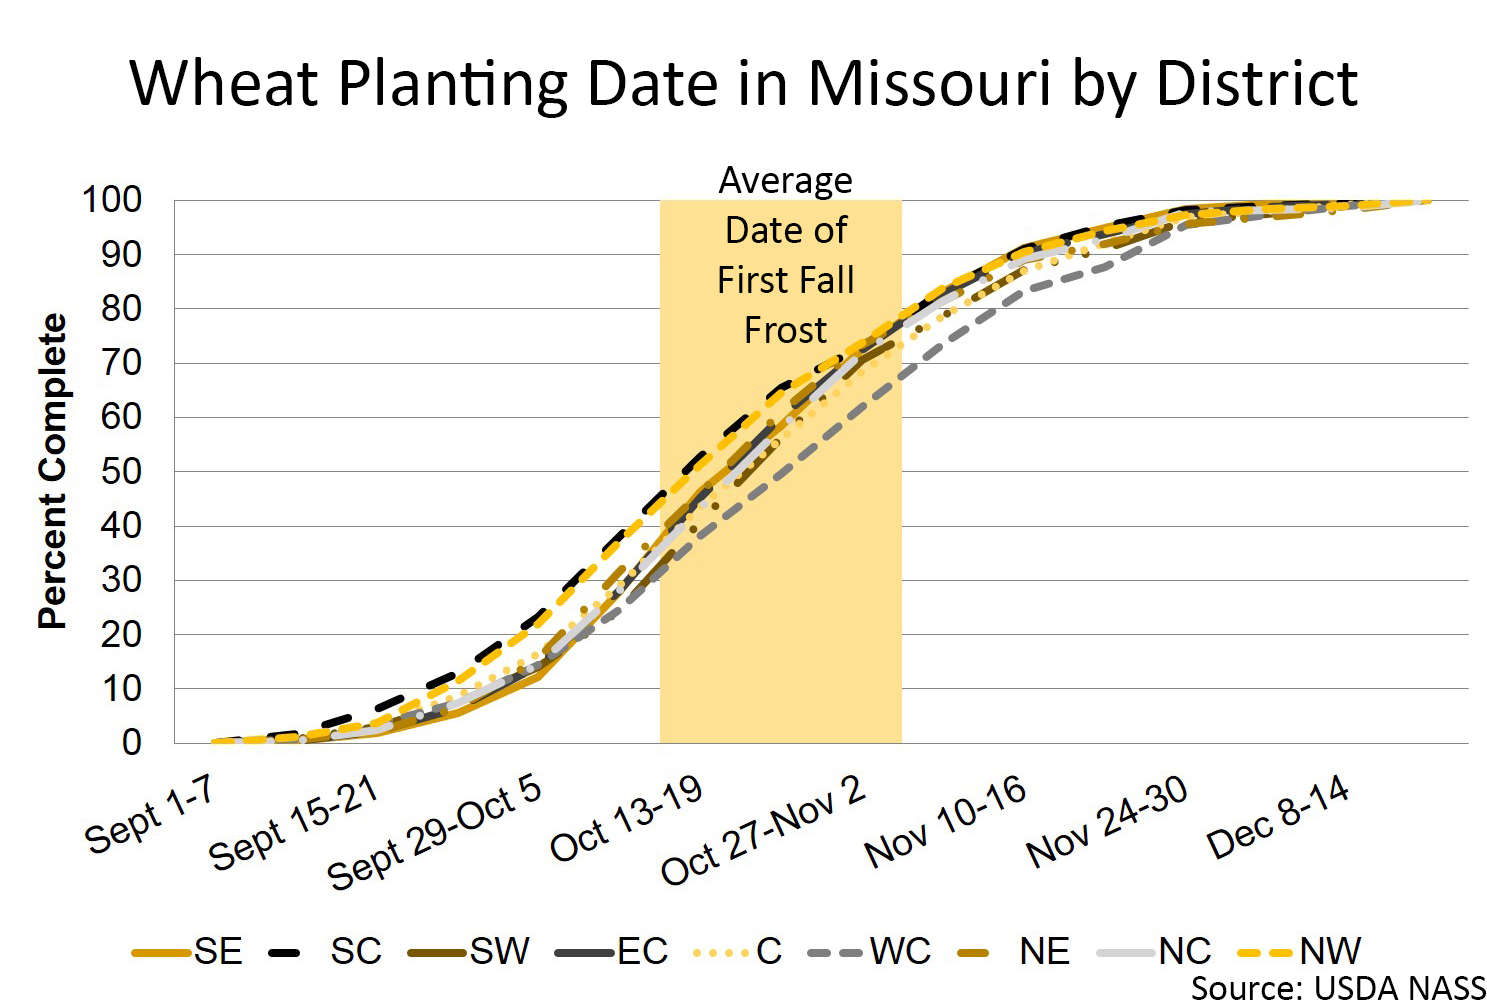 Missouri wheat planting date by district chart